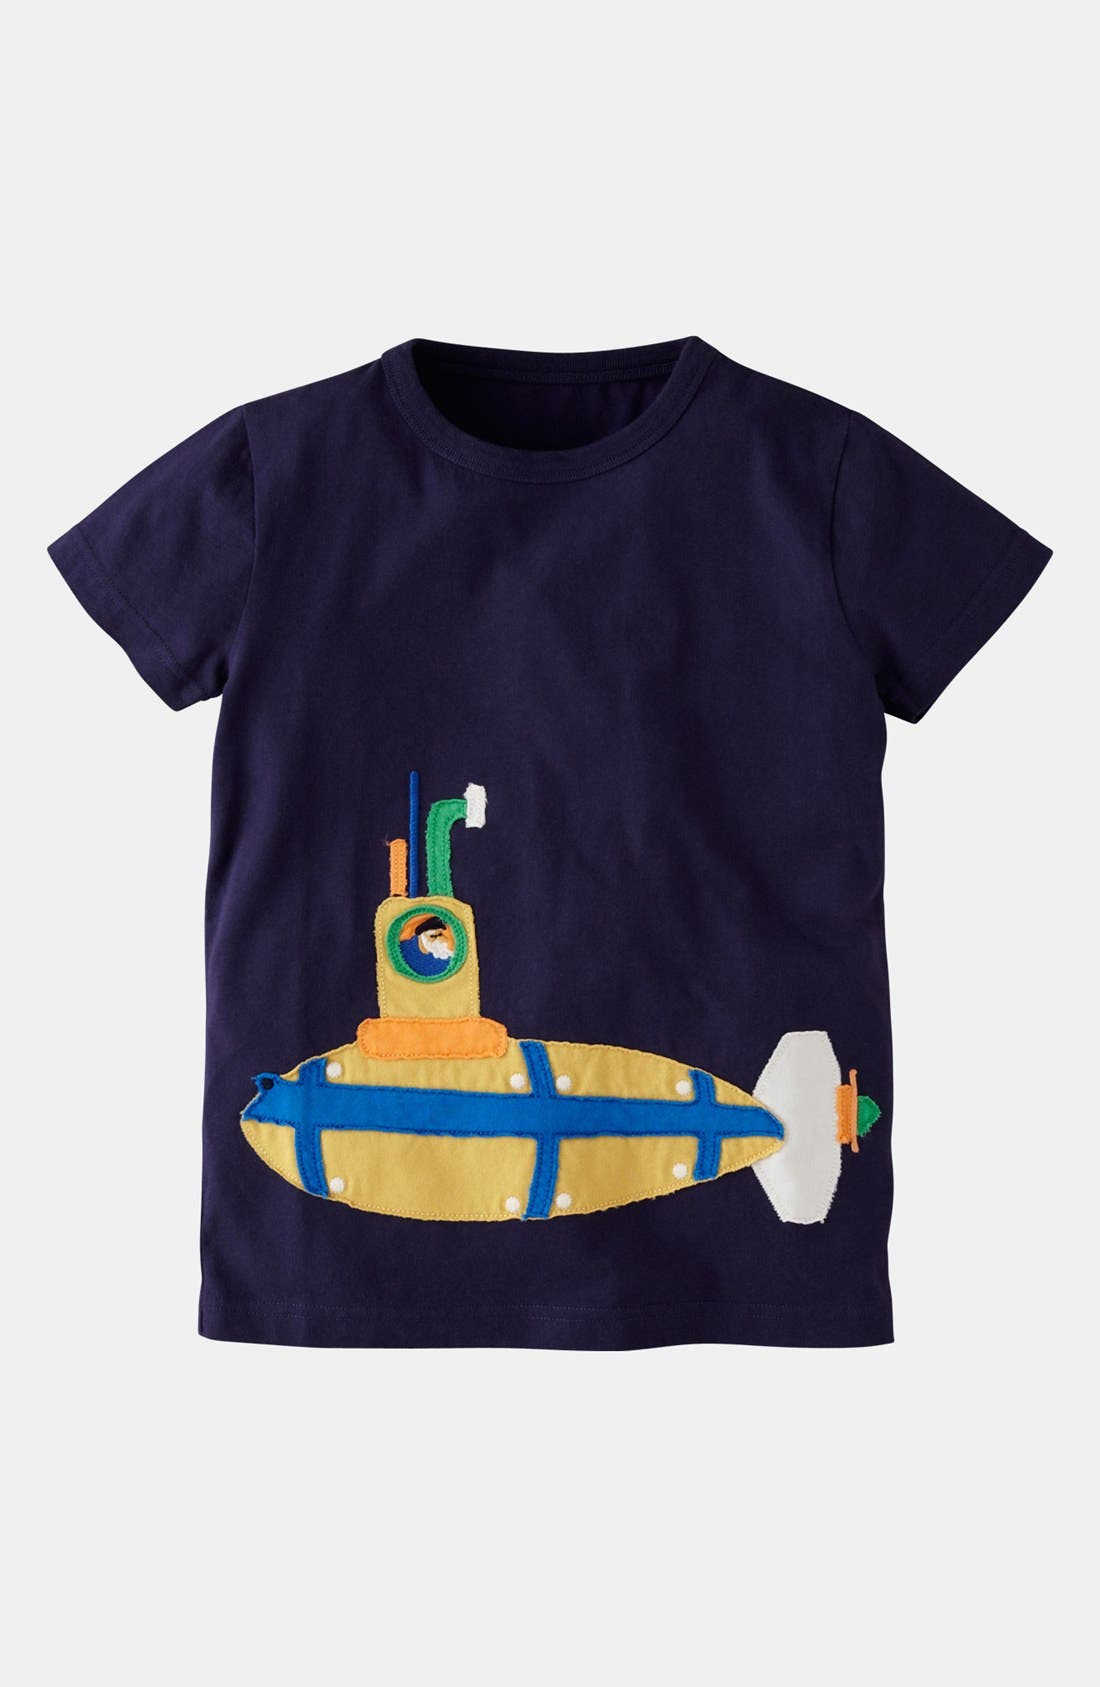 'Vehicle' T-Shirt,                             Main thumbnail 1, color,                             Navy/ Submarine